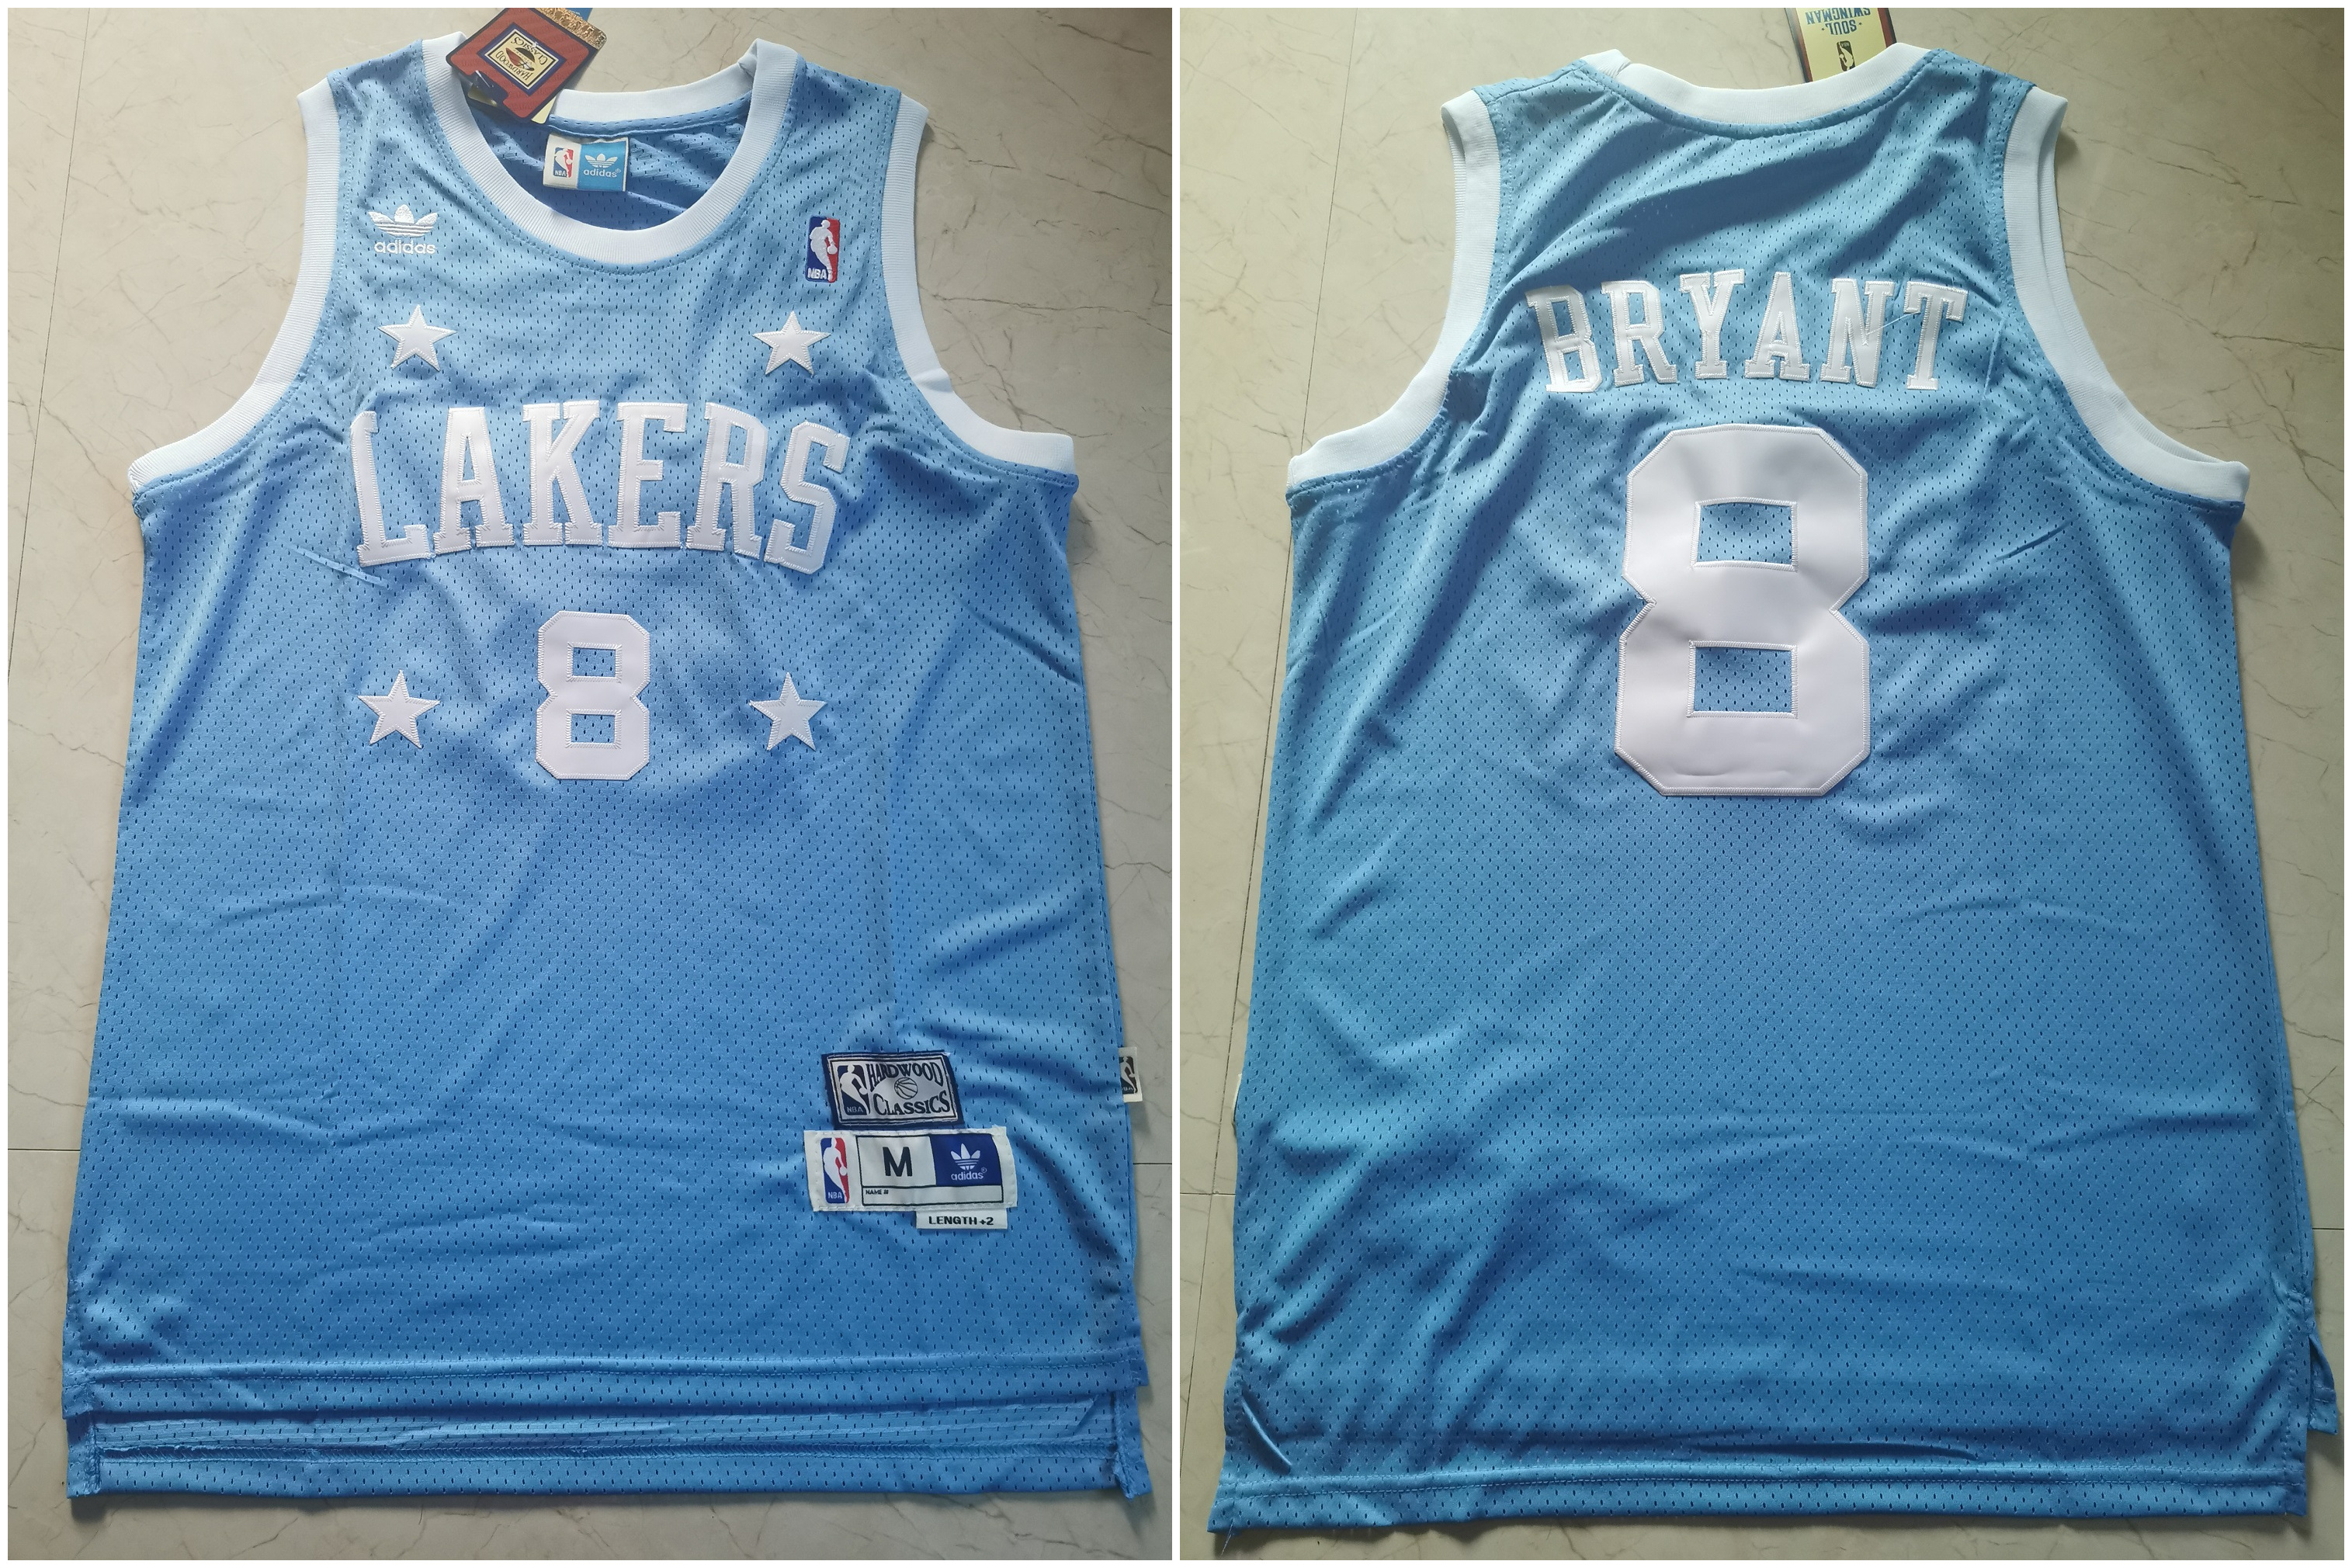 Lakers 8 Kobe Bryant Light Blue Hardwood Classics Jersey